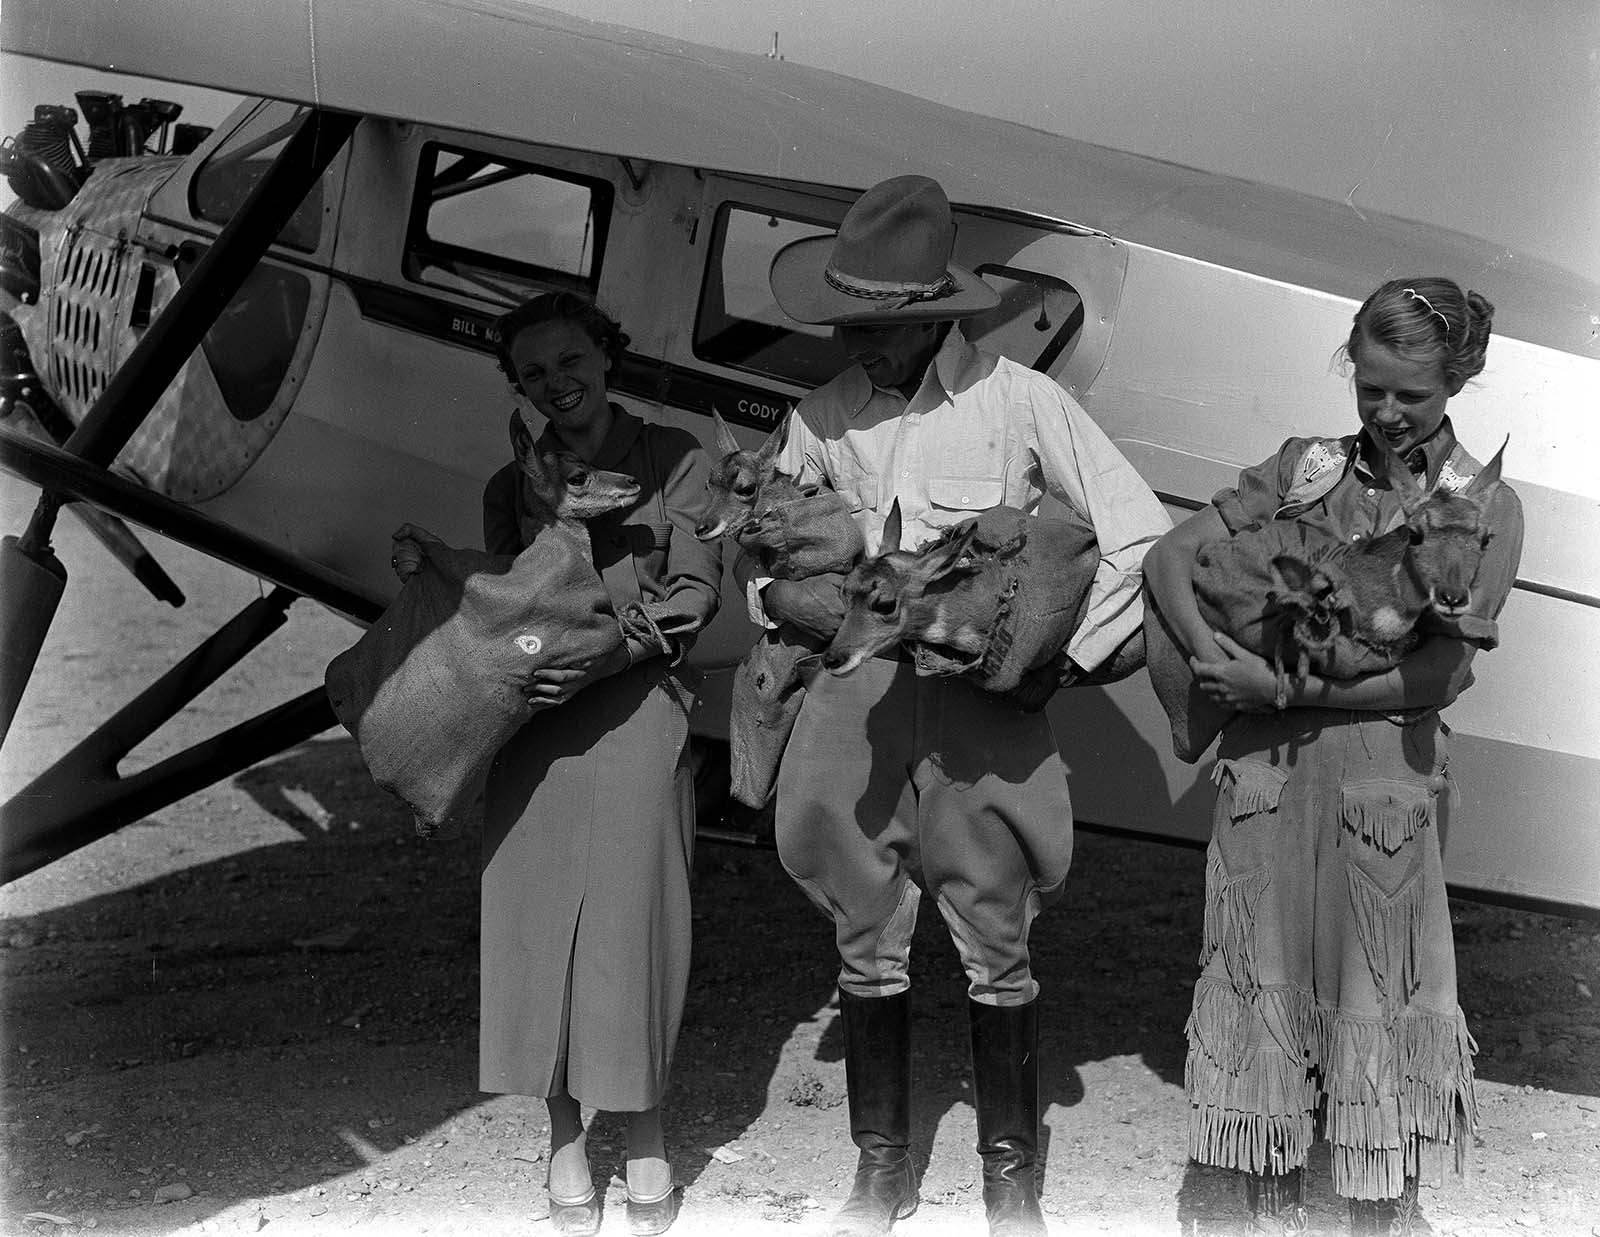 Bill Monday and helpers gather pronghorn for an airplane ride. MS 3 Charles Belden Collection. Loading Pronghorn: PN.67.695a